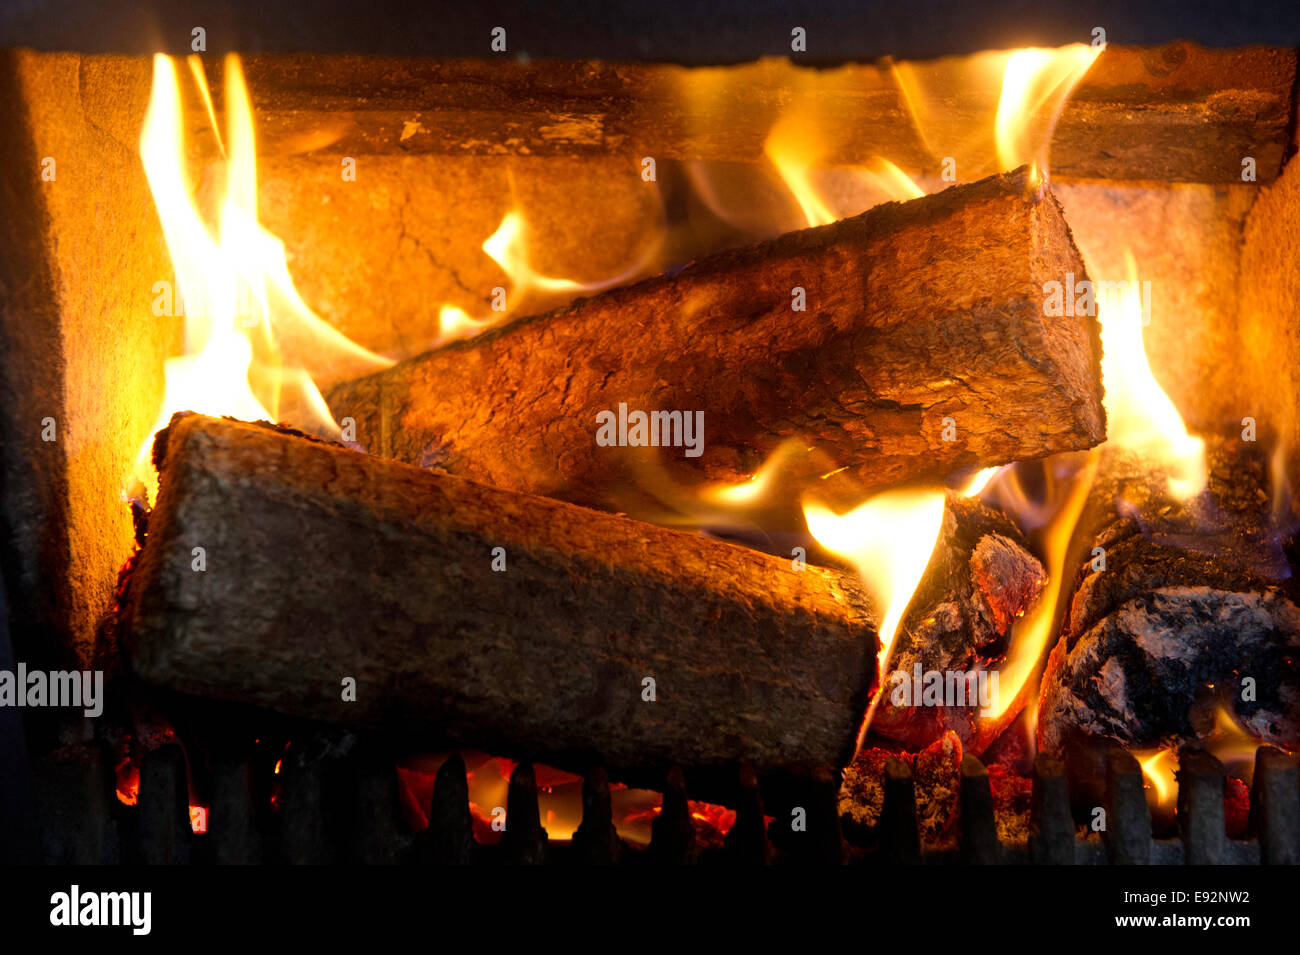 Eco logs in fireplace - Stock Image